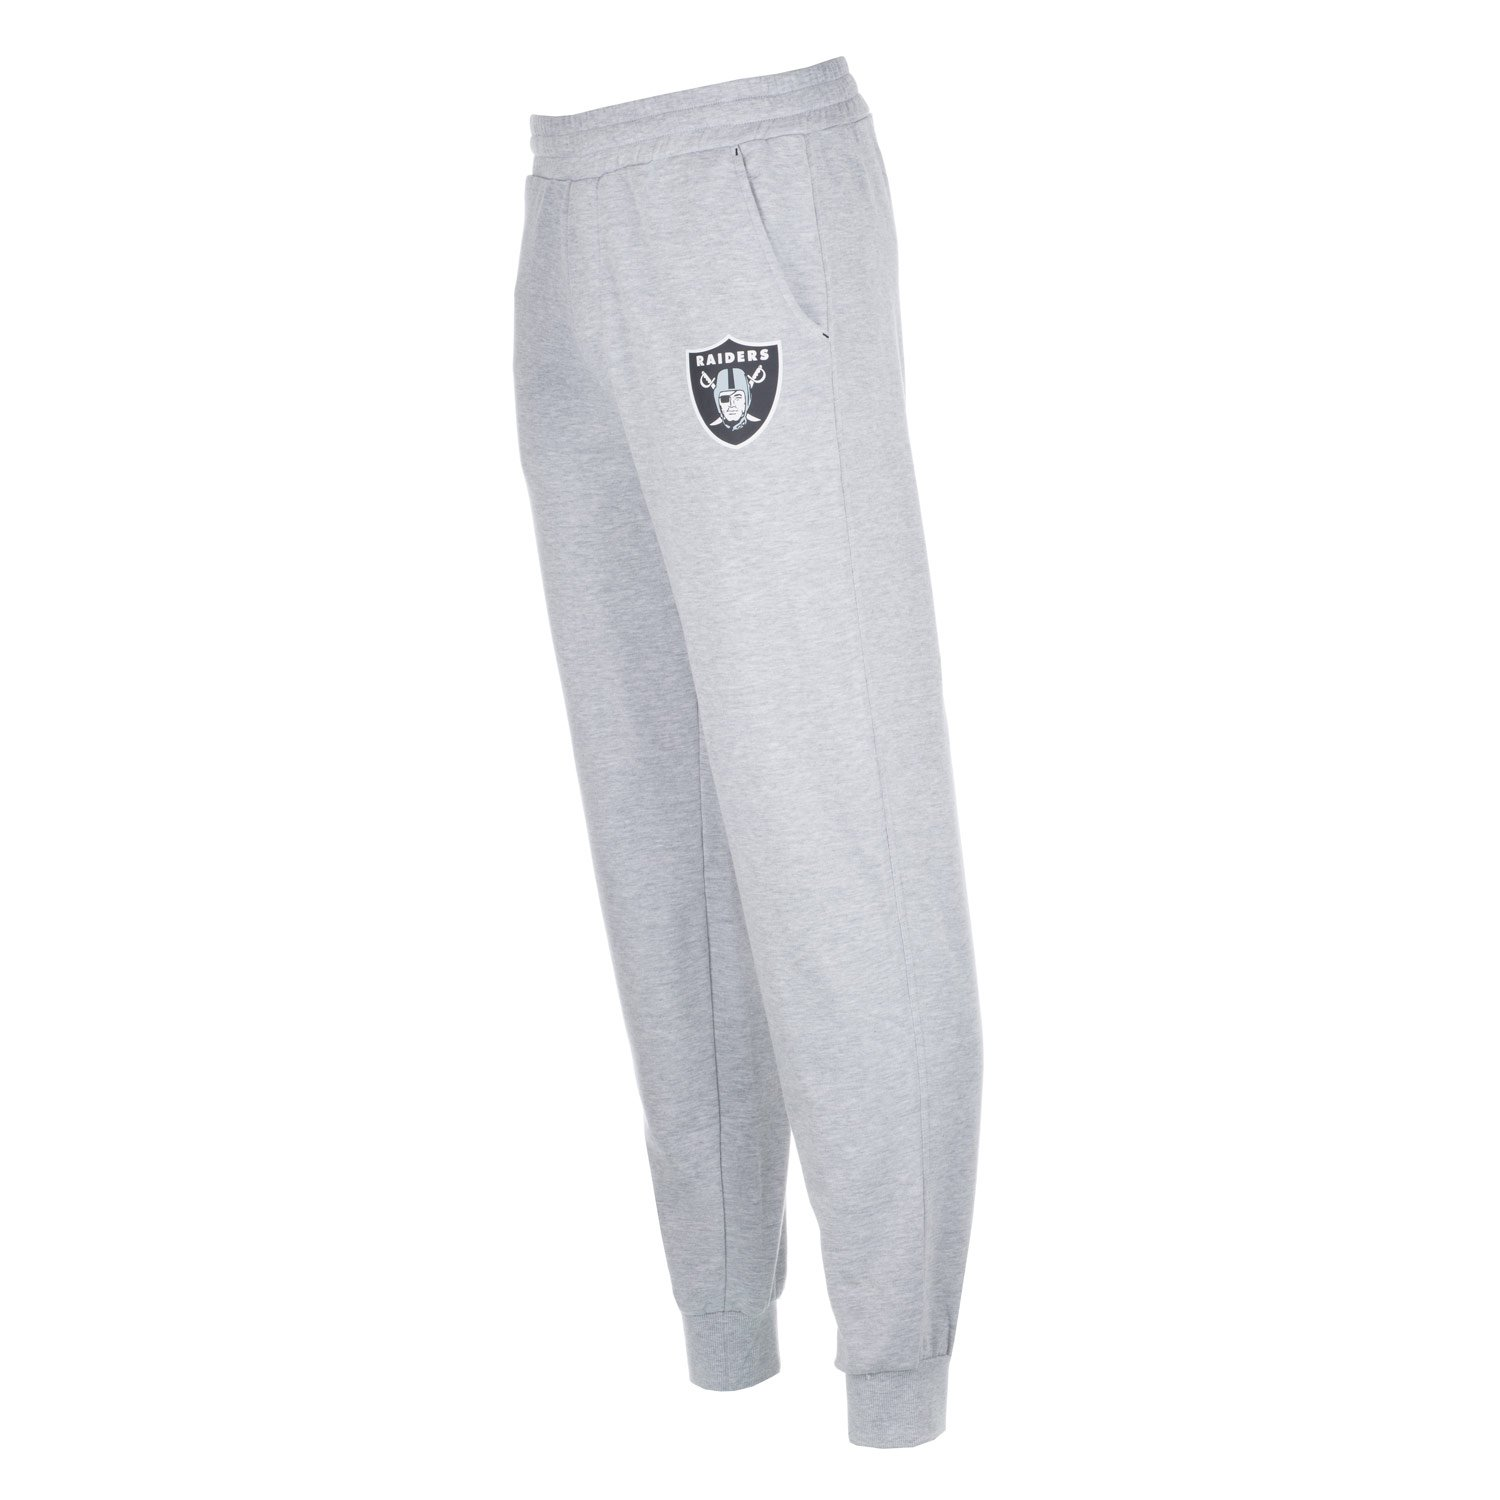 Majestic Mens Oakland Raiders Sroka Fleece Jog Pants Grey Marl